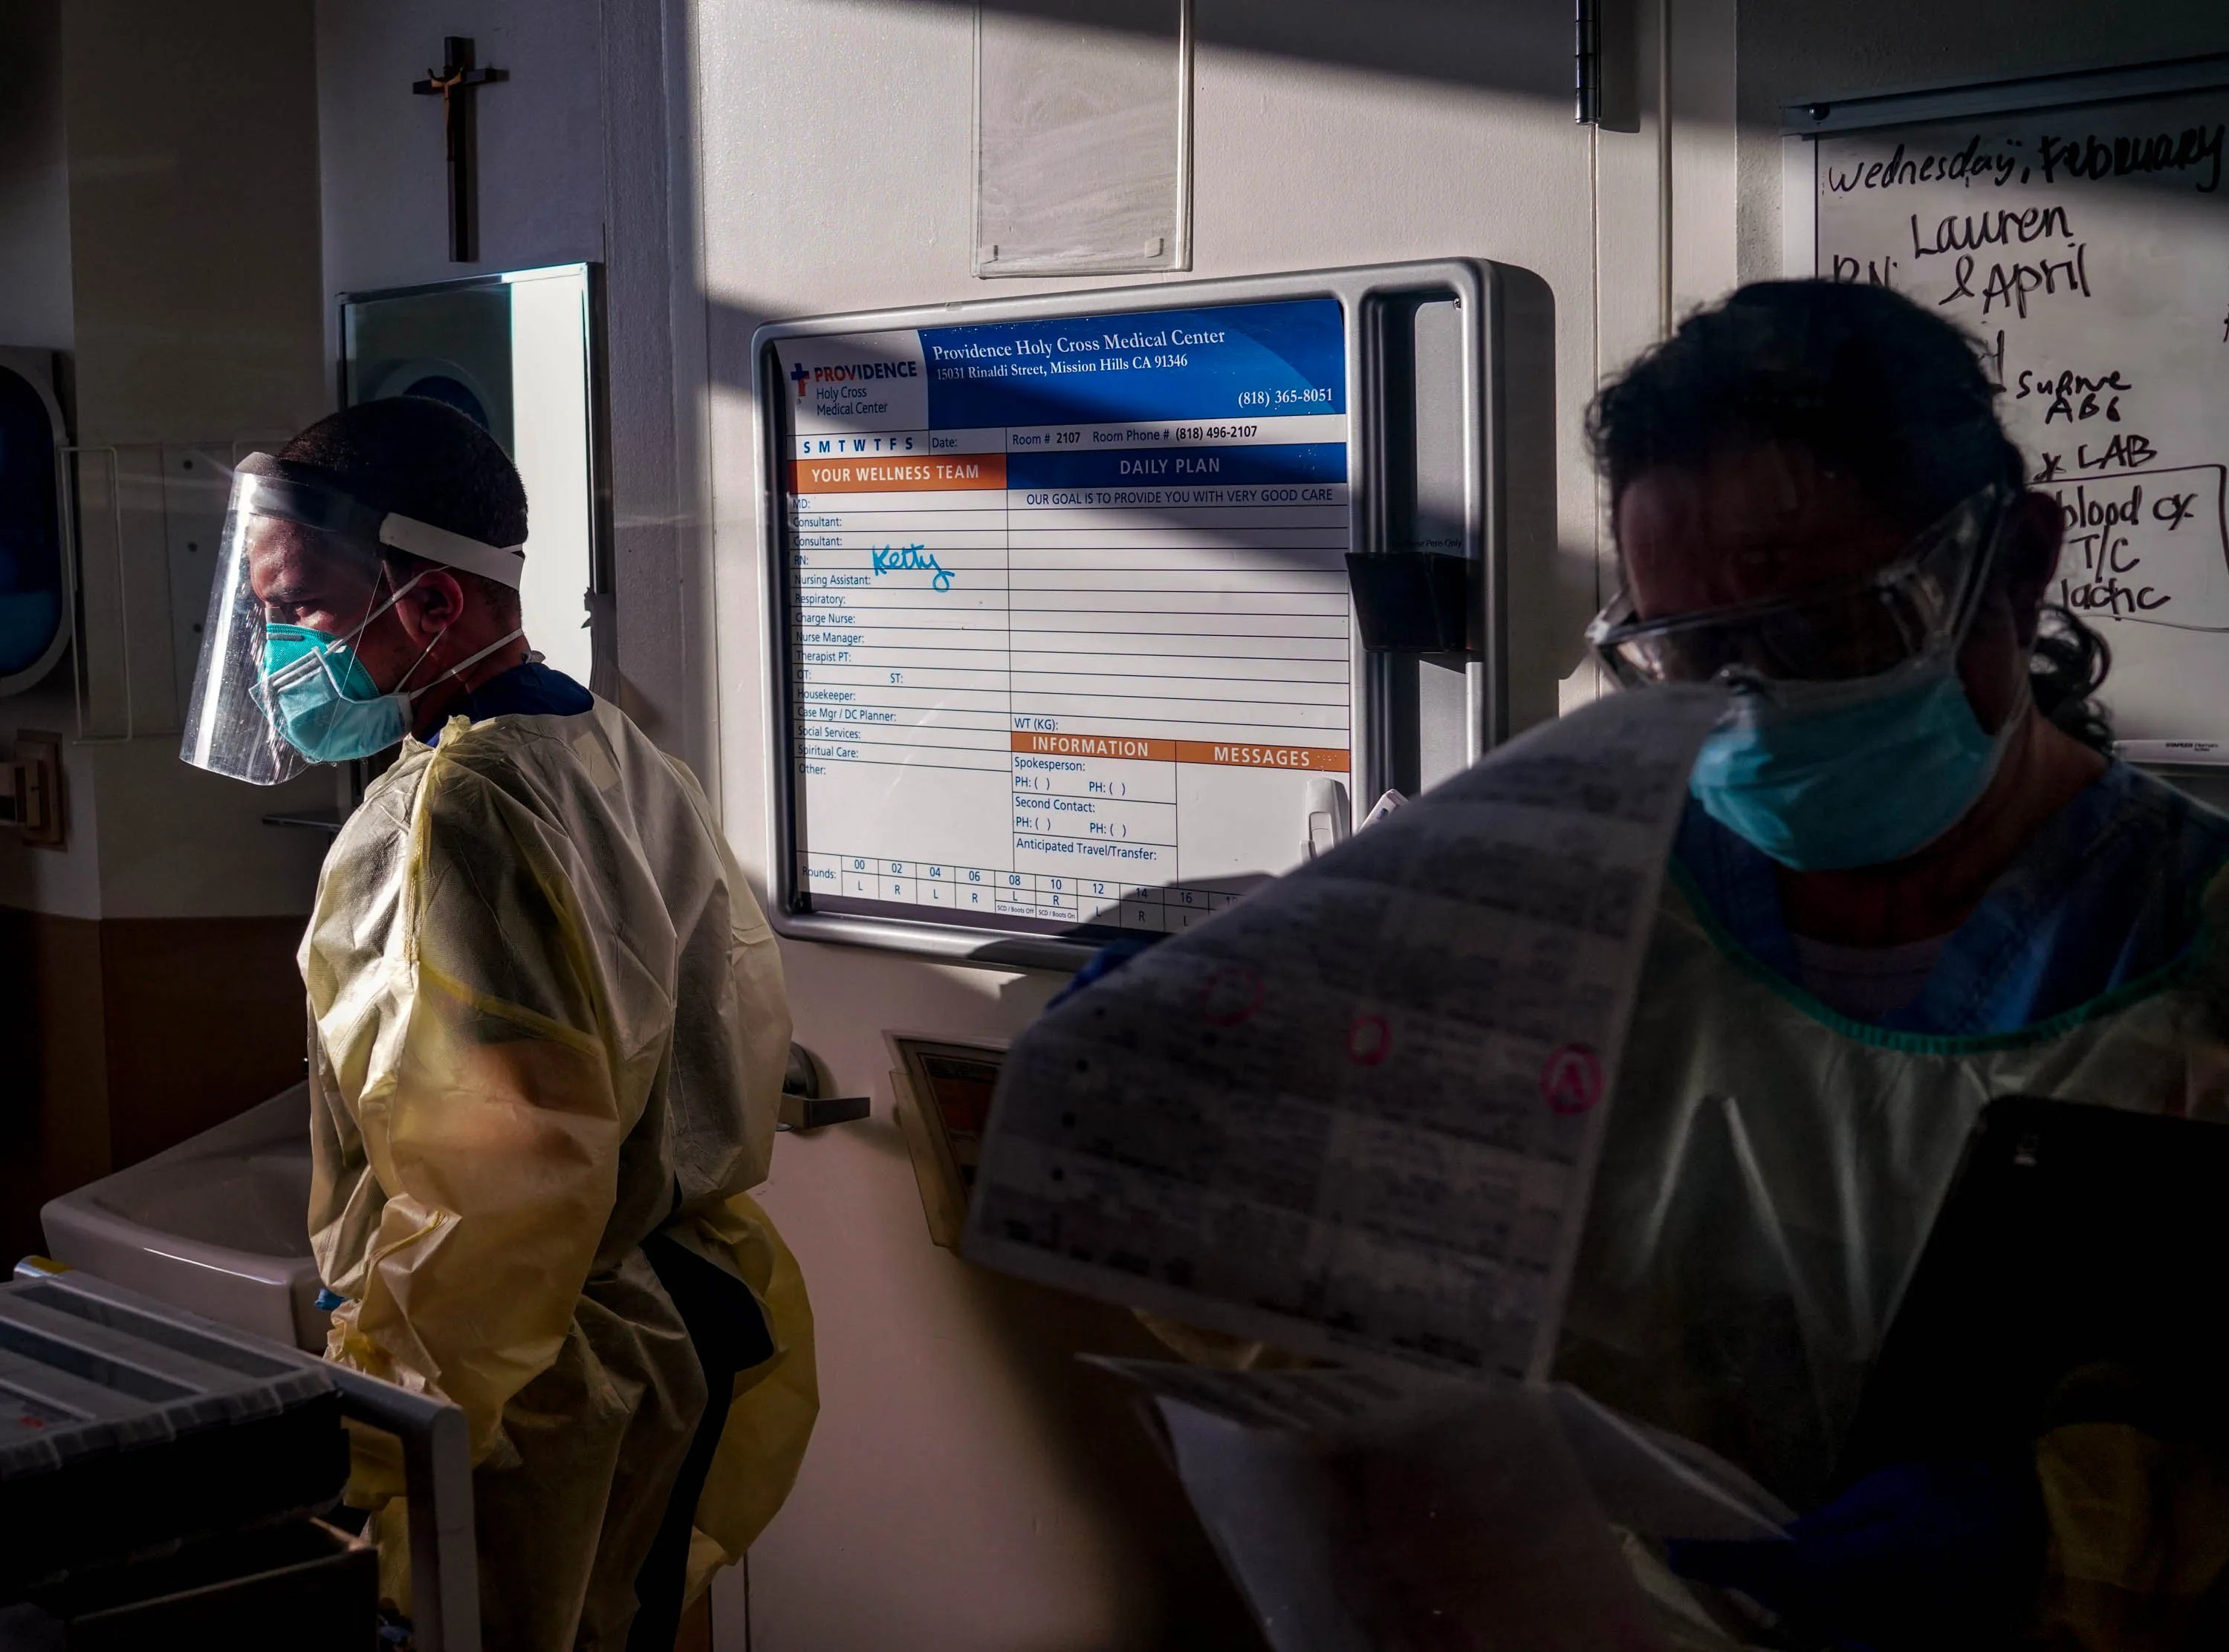 Jacques Coupet, left, a dialysis registered nurse, looks at a patient receiving dialysis treatment while medical staff attends to a patient on Wednesday, Feb. 10, 2021, in the intensive care unit at Providence Holy Cross Medical Center in Los Angeles.